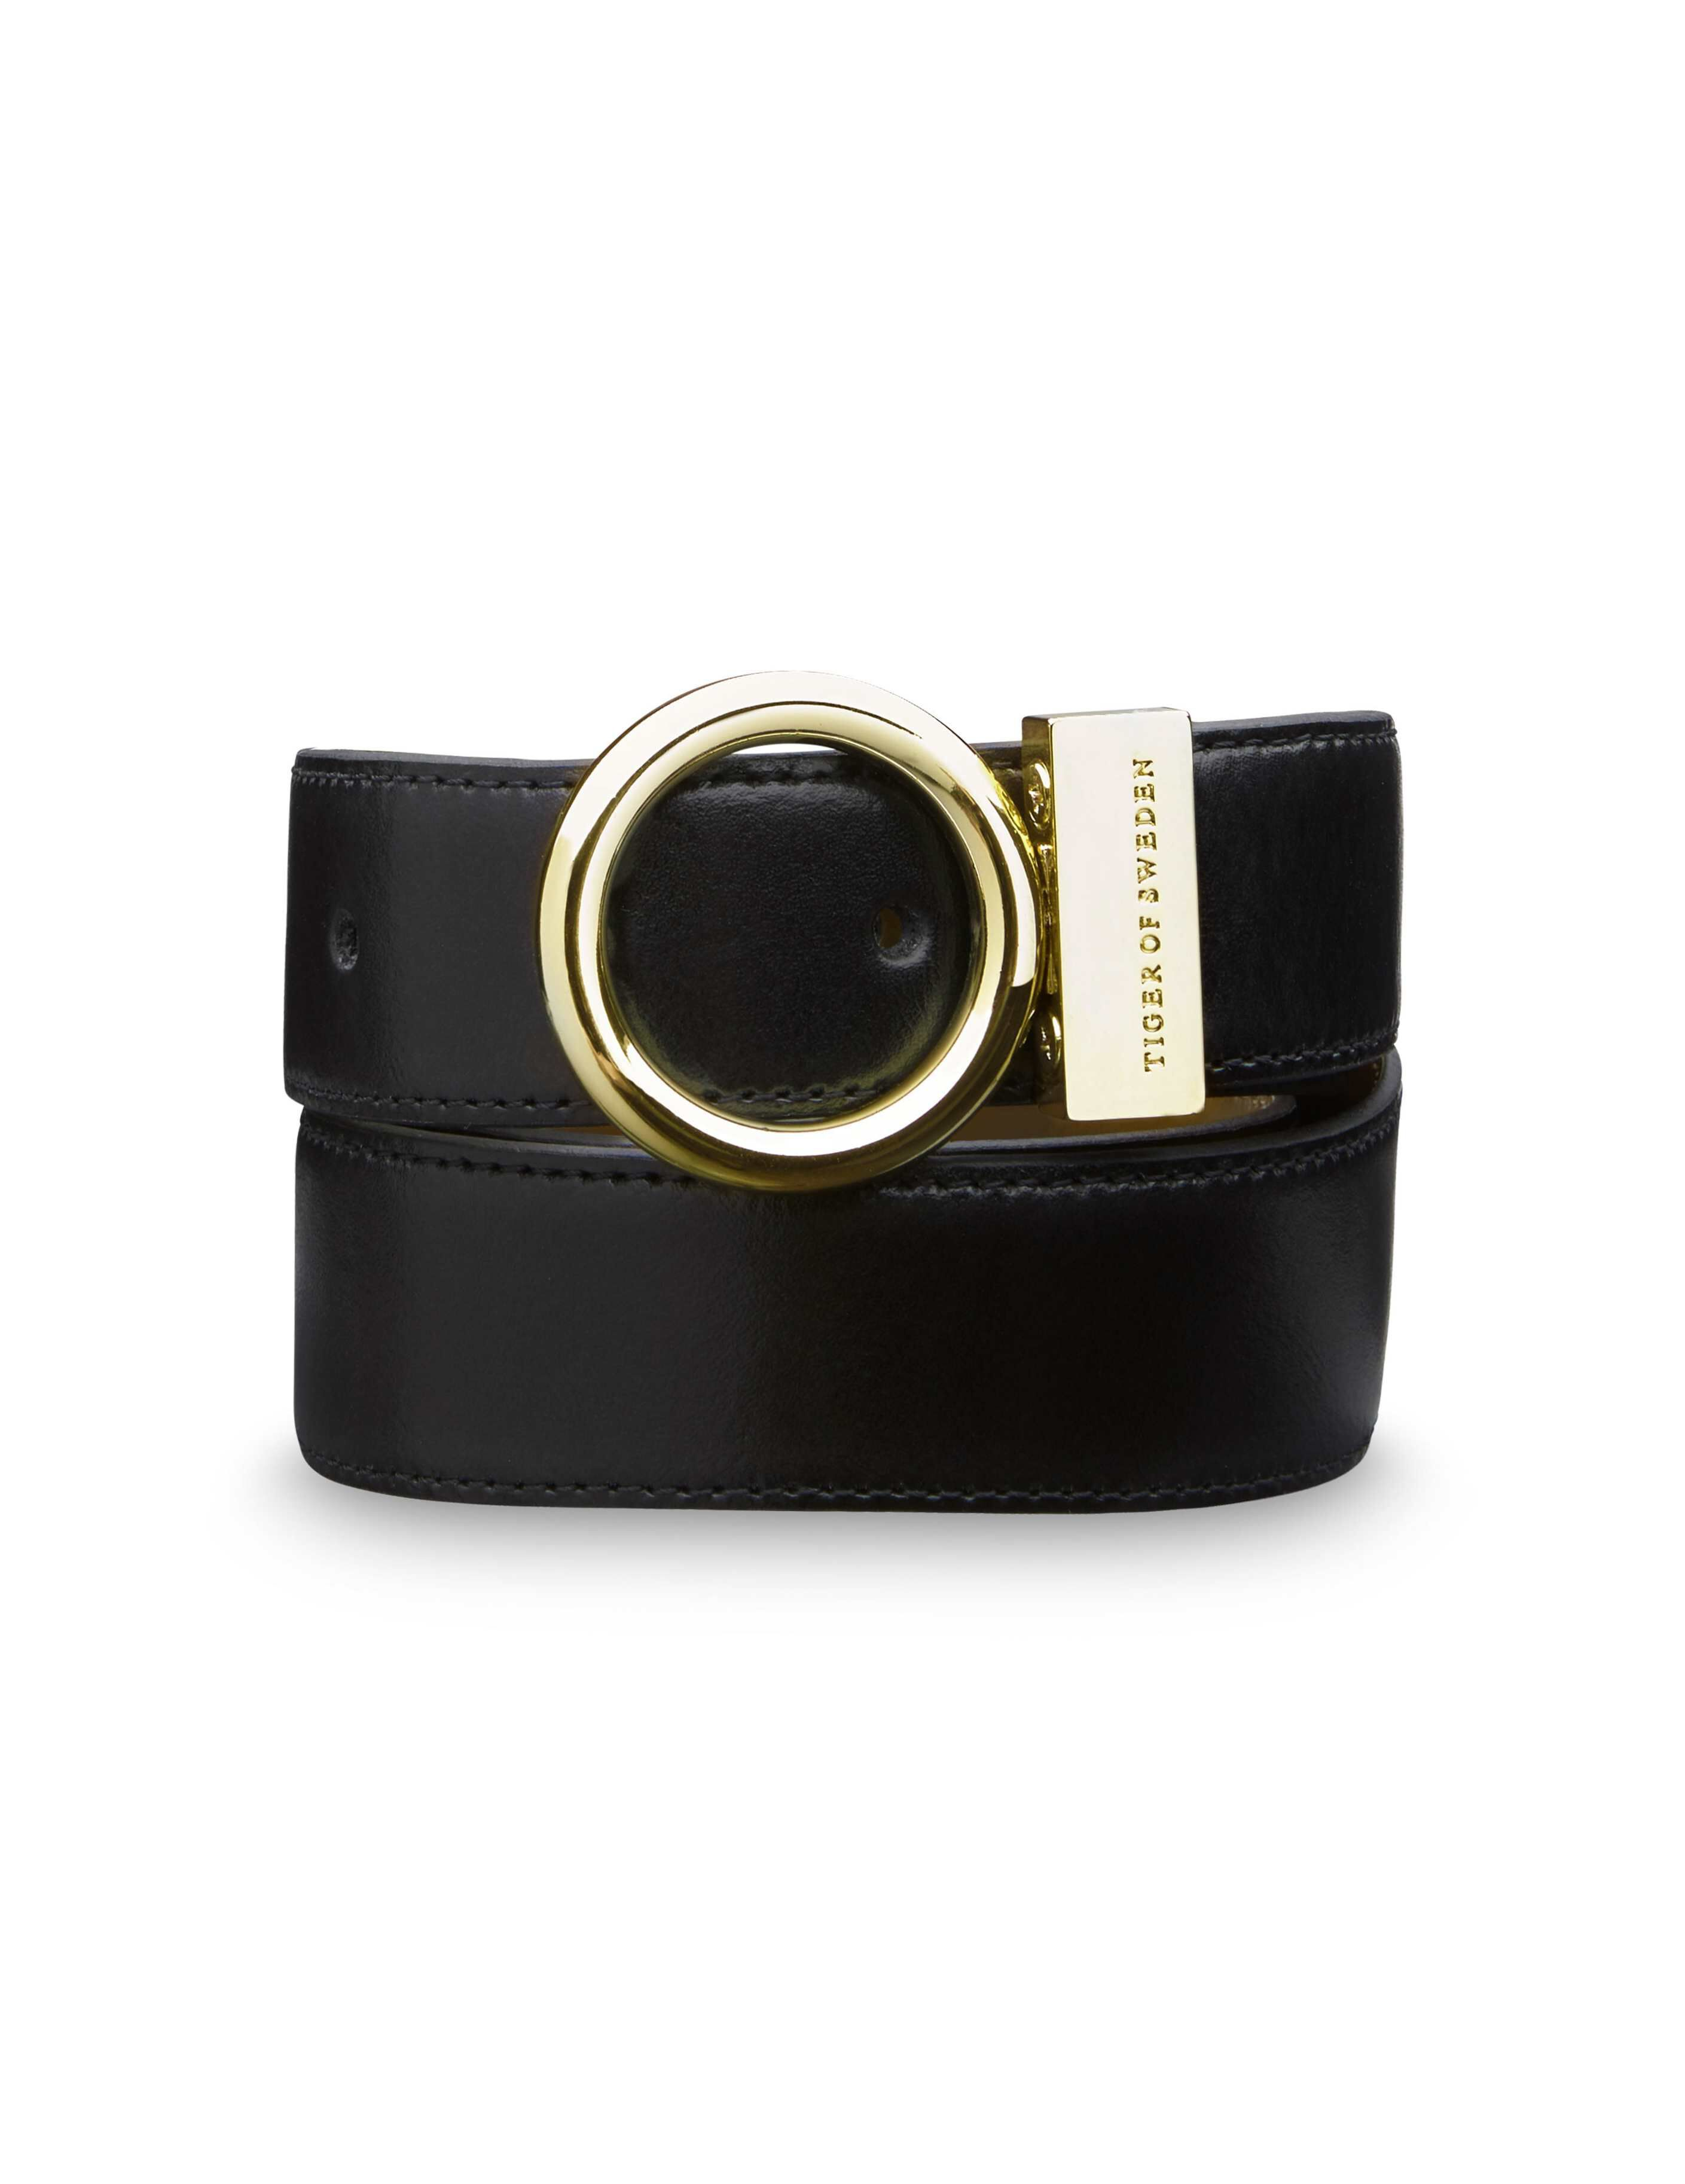 ... Dursley belt in Black from Tiger of Sweden ...